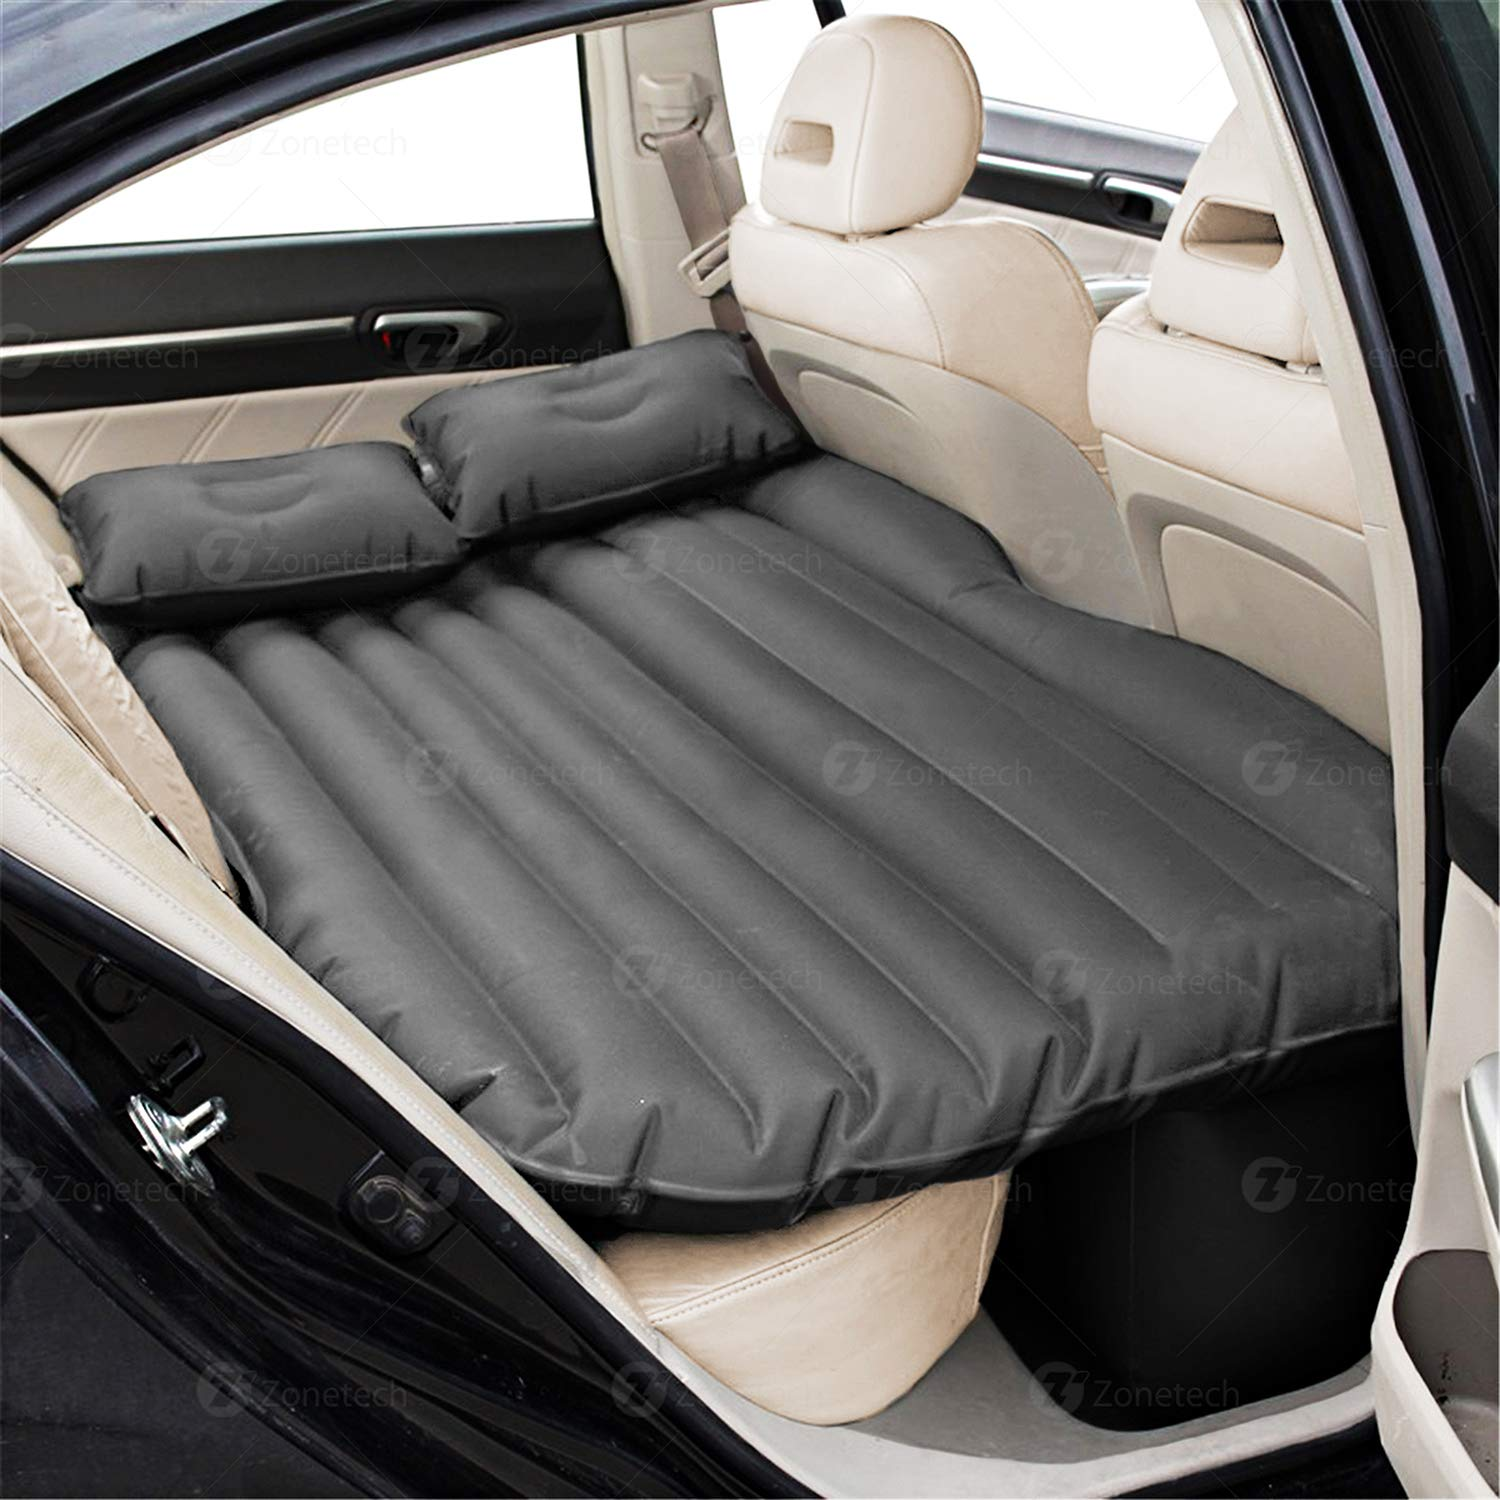 Car Travel Inflatable Air Mattress Back Seat - Zone Tech Premium Quality Car Bed Back Seat Inflatable Air Mattress with 2 Air Pillows by ZONETECH